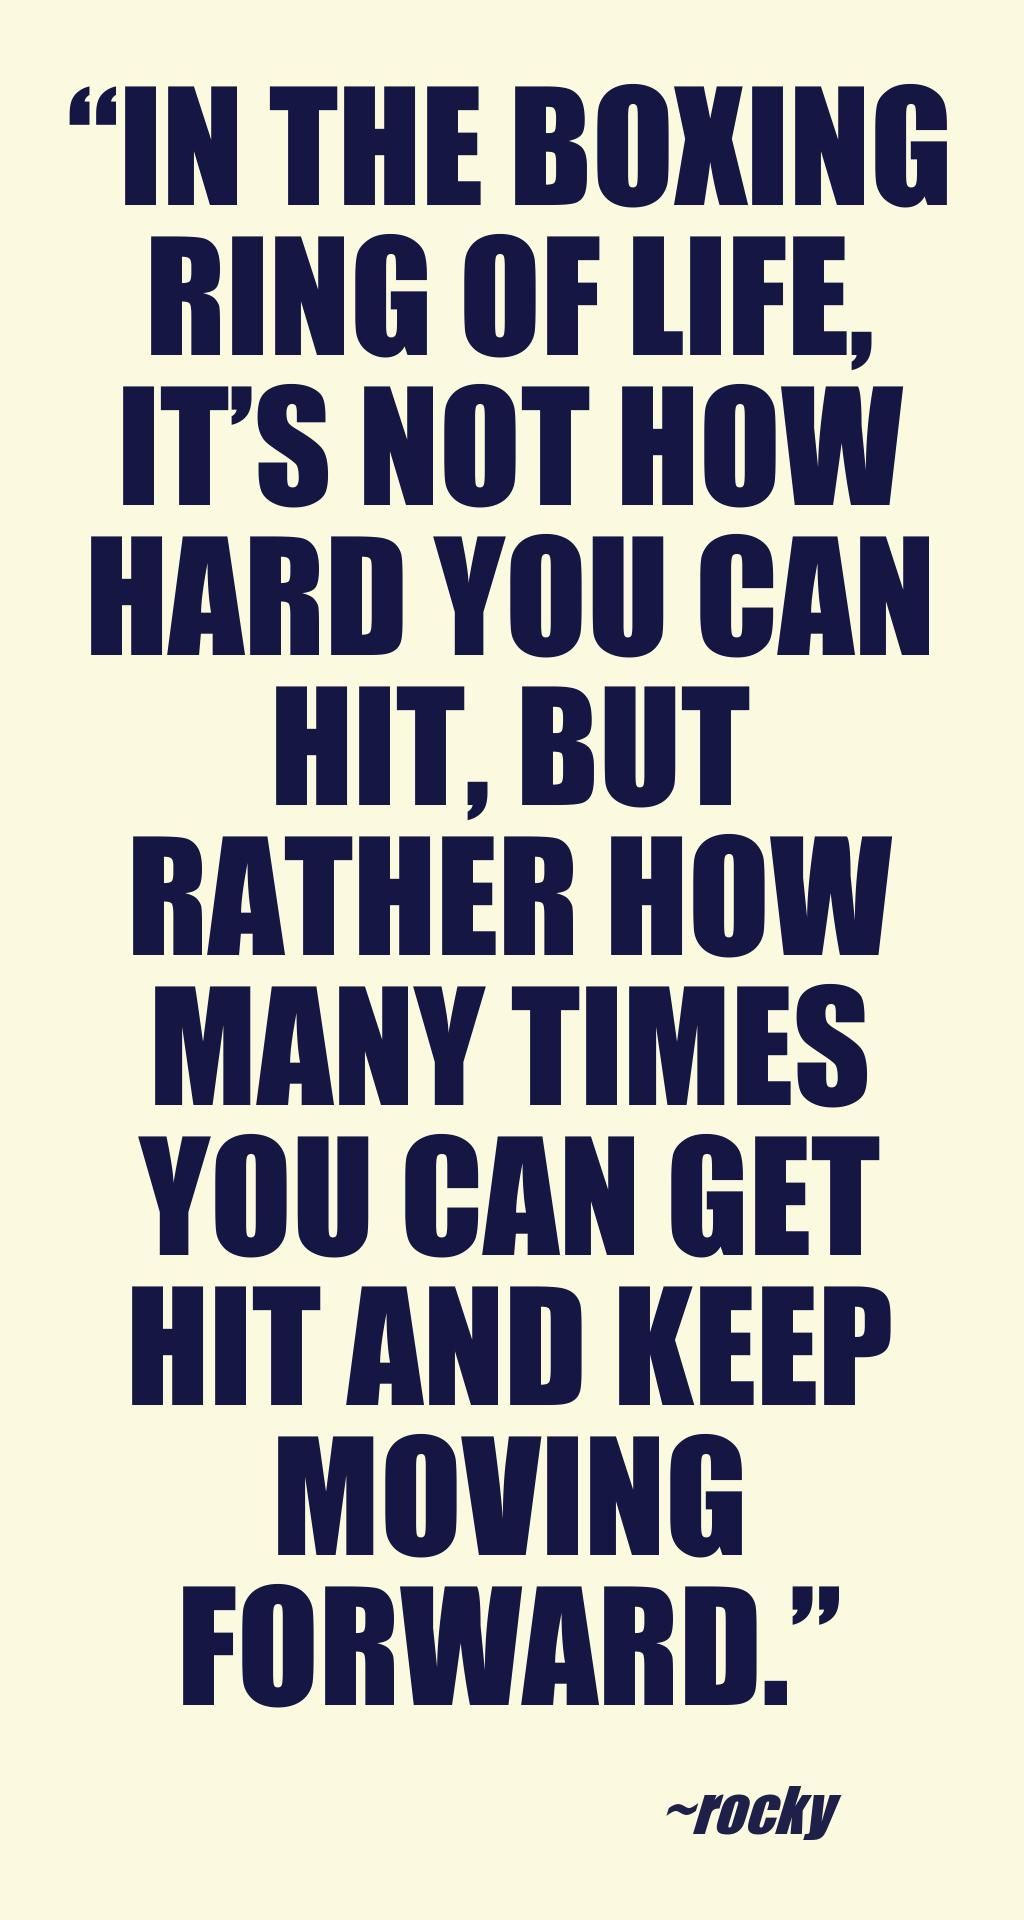 POSTER STUNNING FRAMED BOXING INSPIRATIONAL QUOTE 27 IT WILL HURT... PRINT